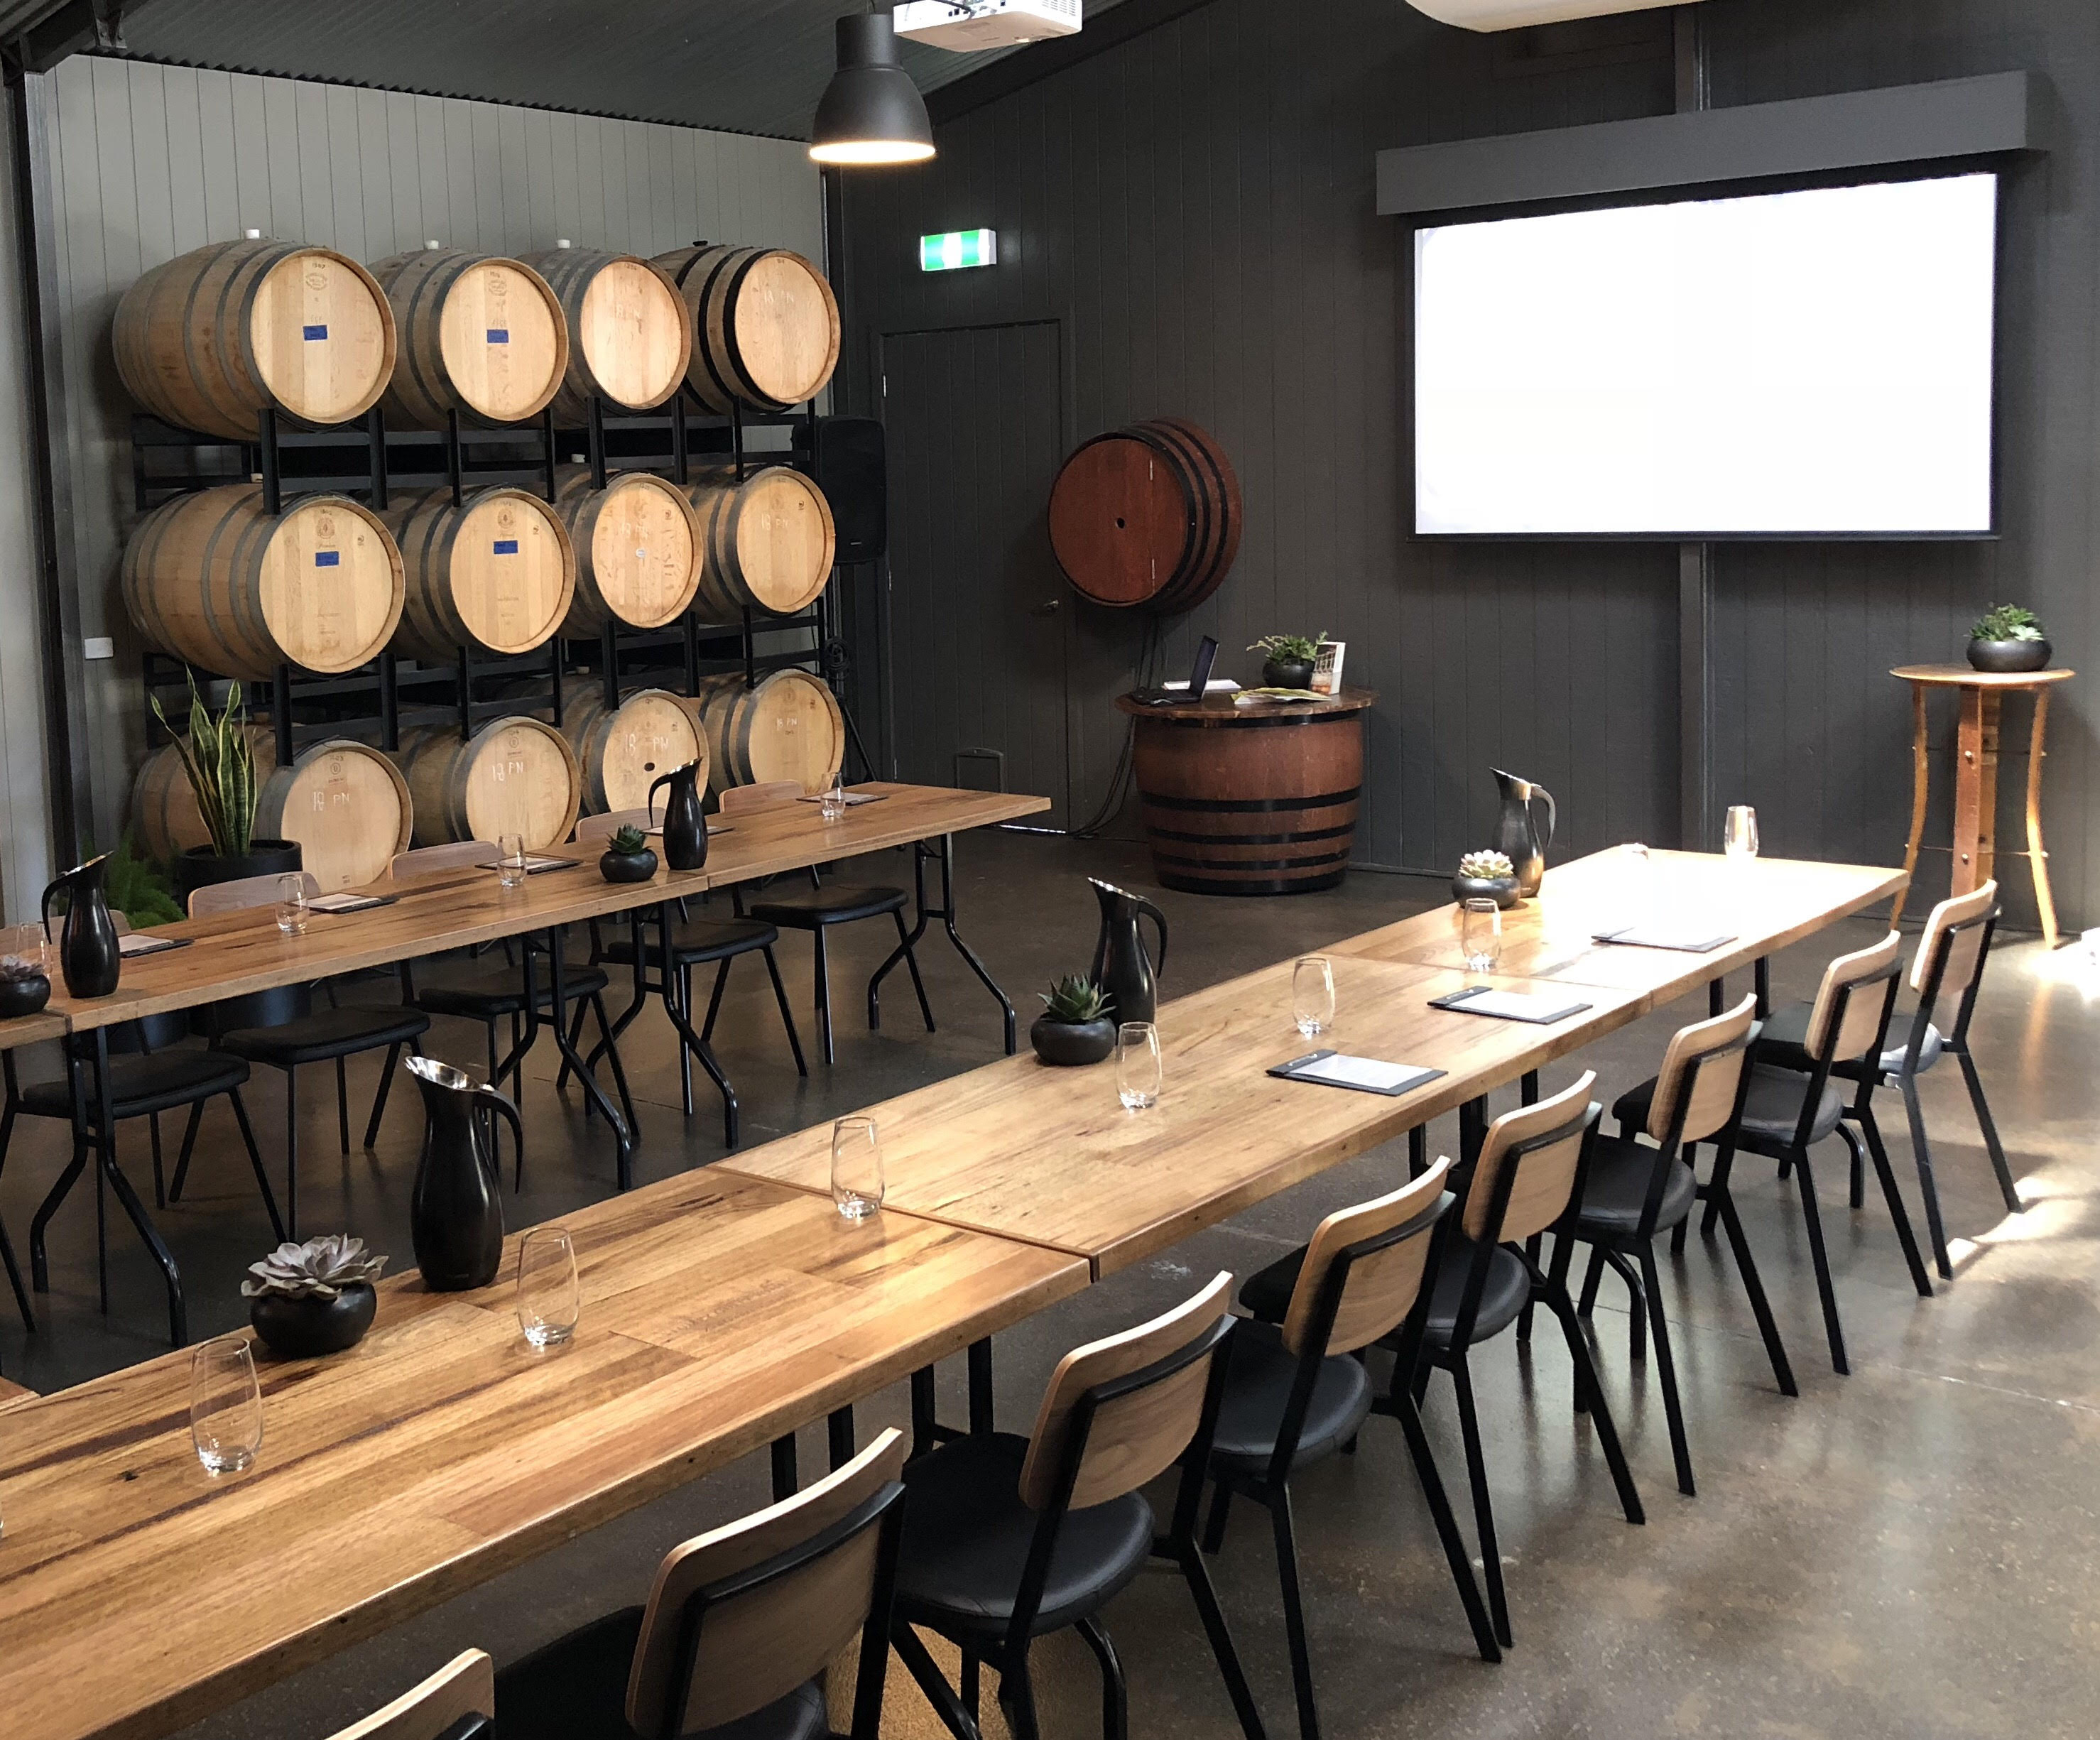 Corporate Function in the Barrel Room